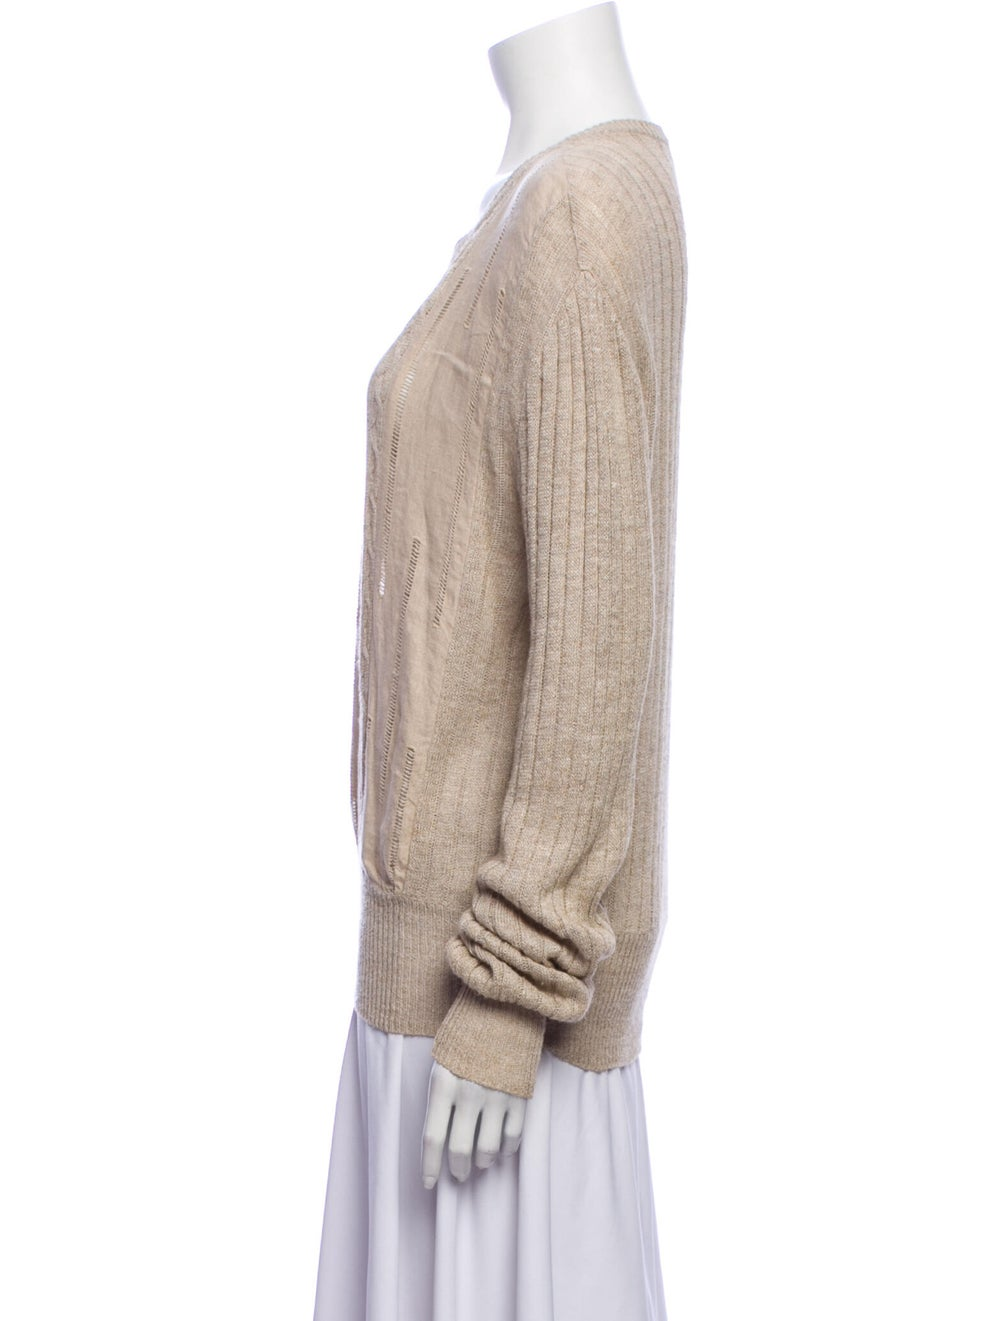 Gucci Vintage 1970's Sweater - image 2